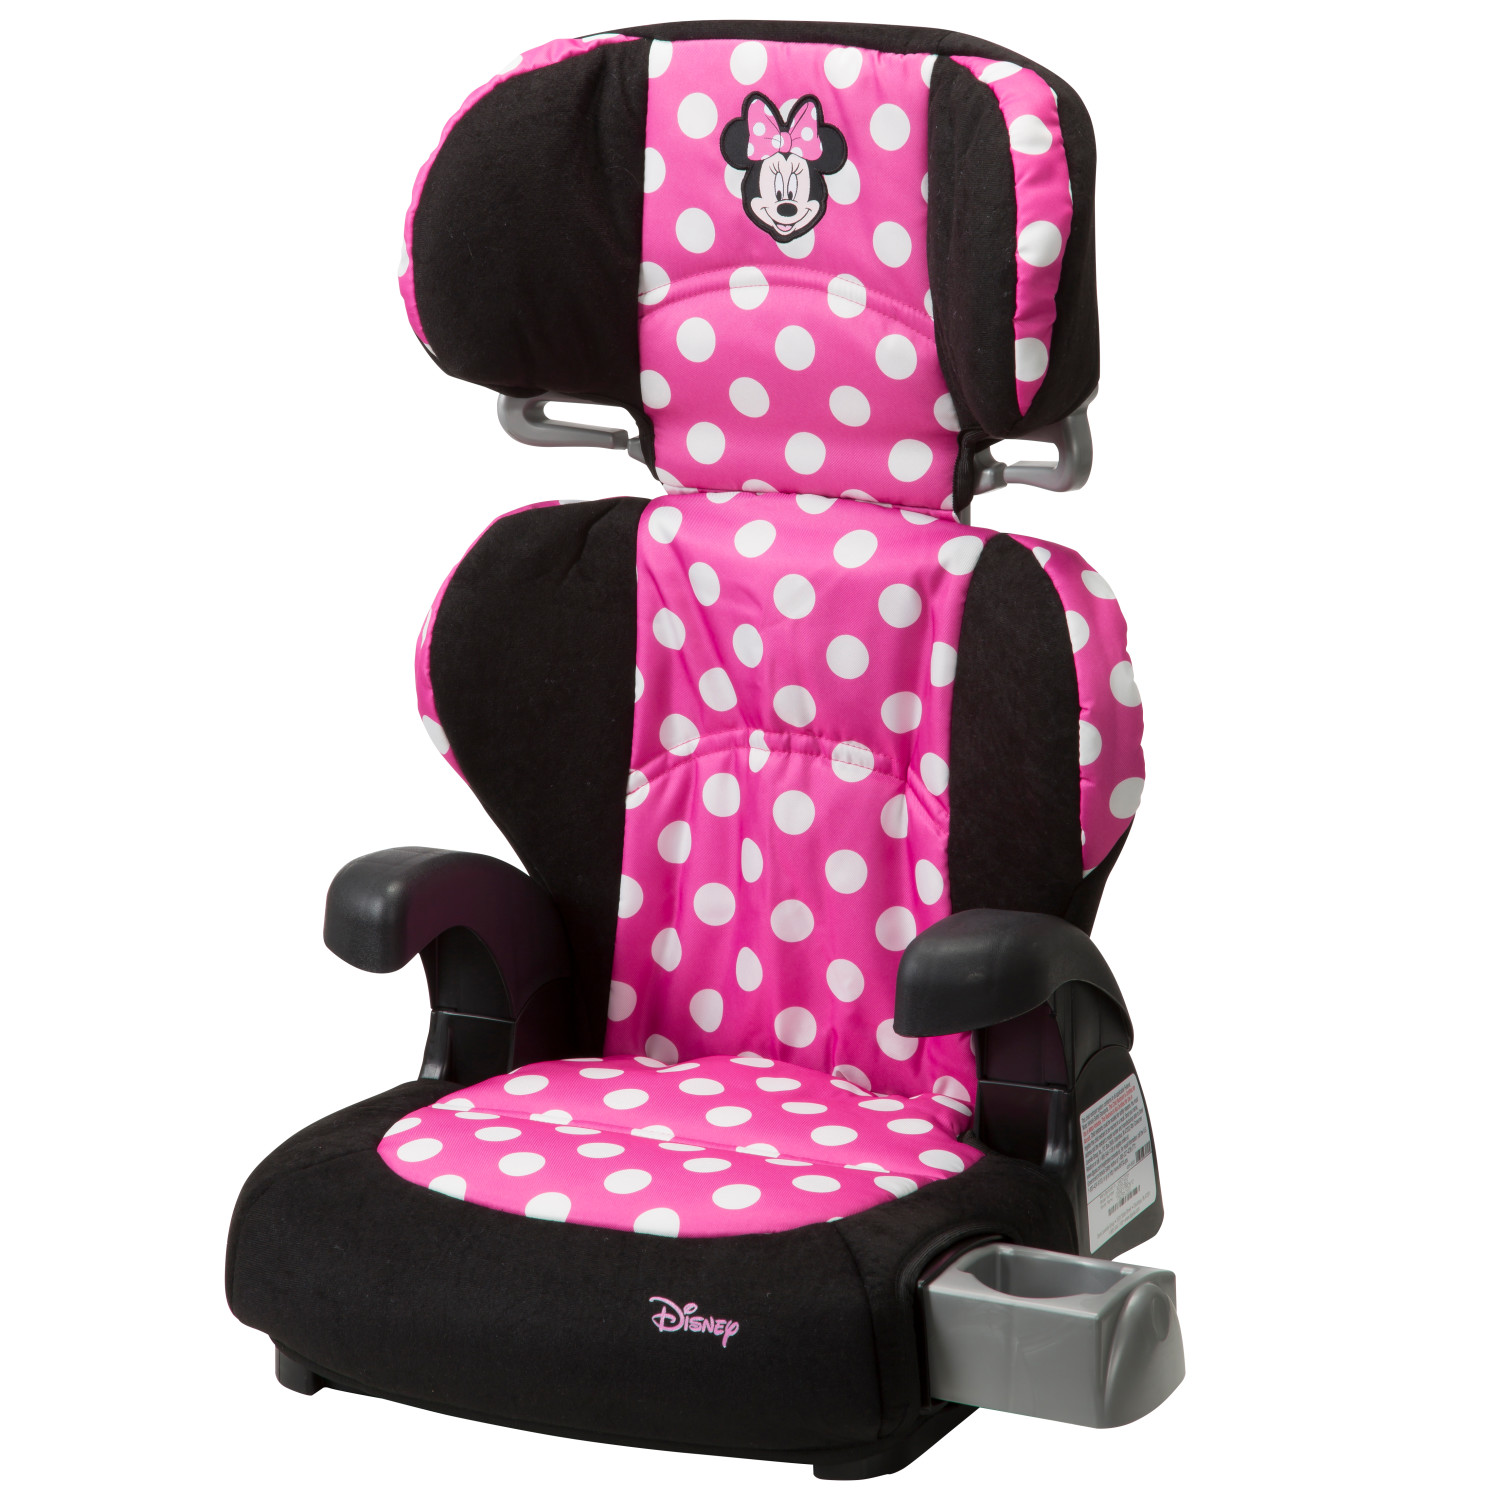 disney baby pronto booster car seat ebay. Black Bedroom Furniture Sets. Home Design Ideas